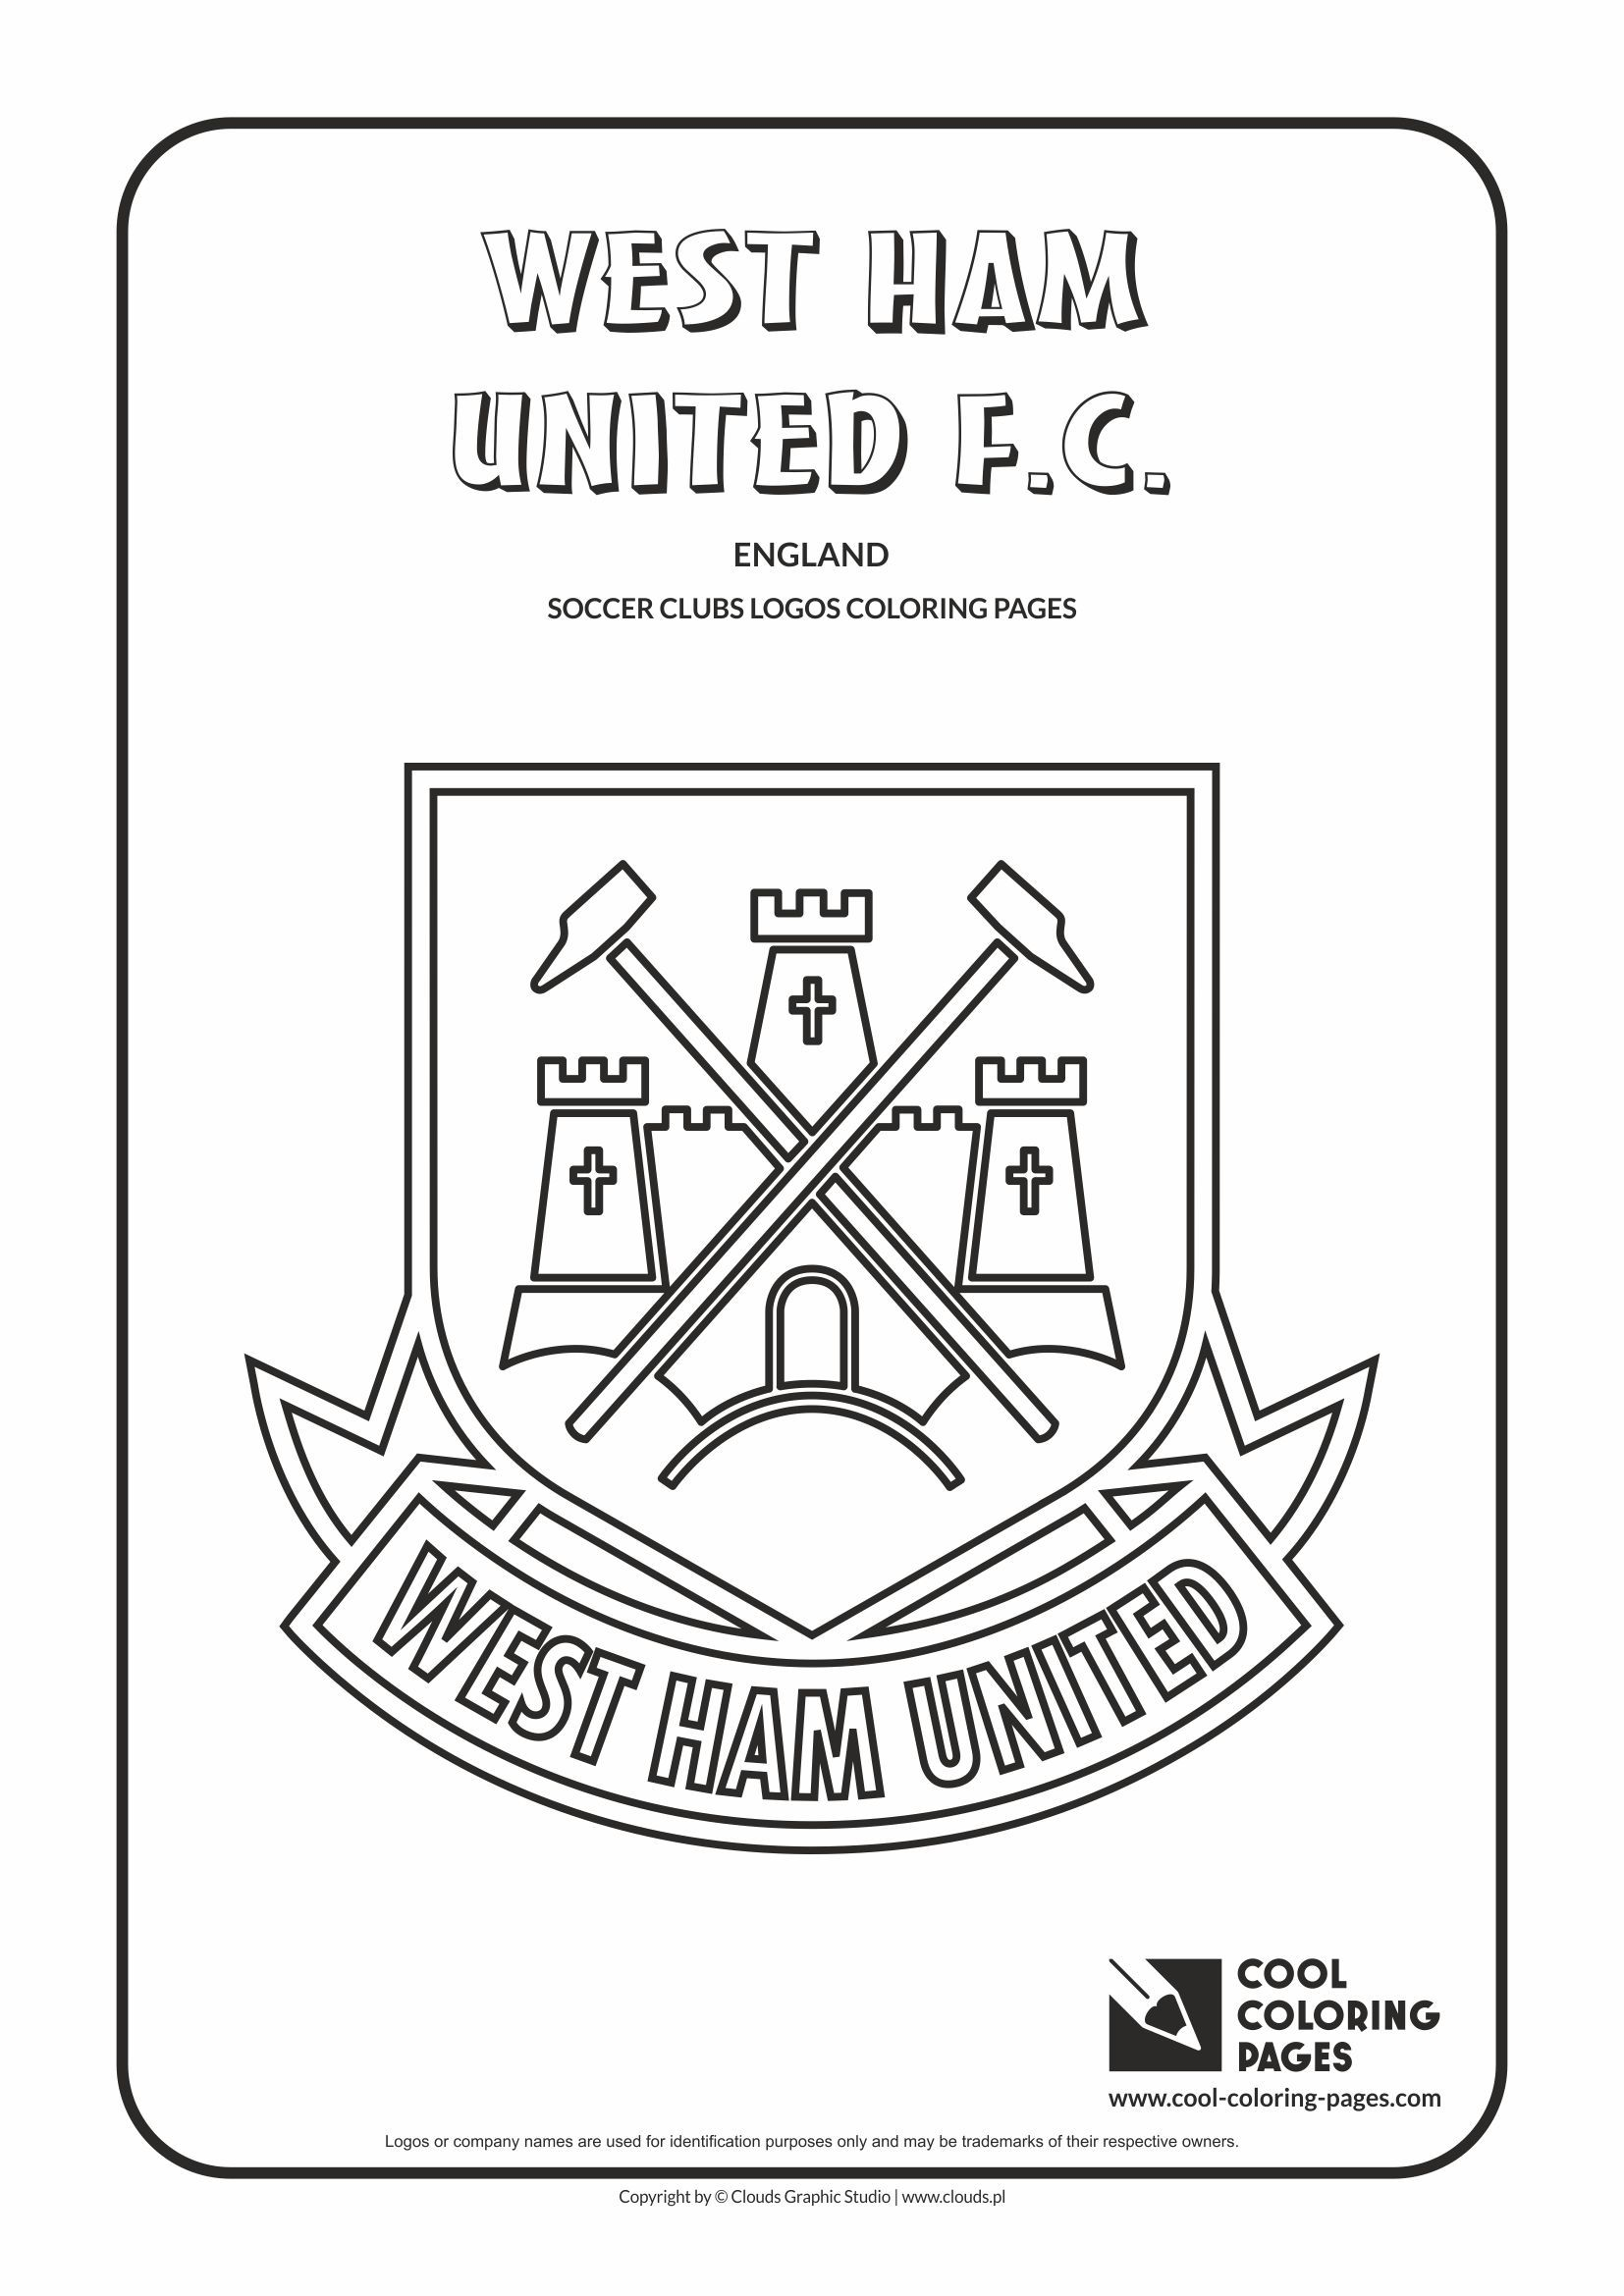 Cool Coloring Pages Soccer Clubs Logos West Ham United FC